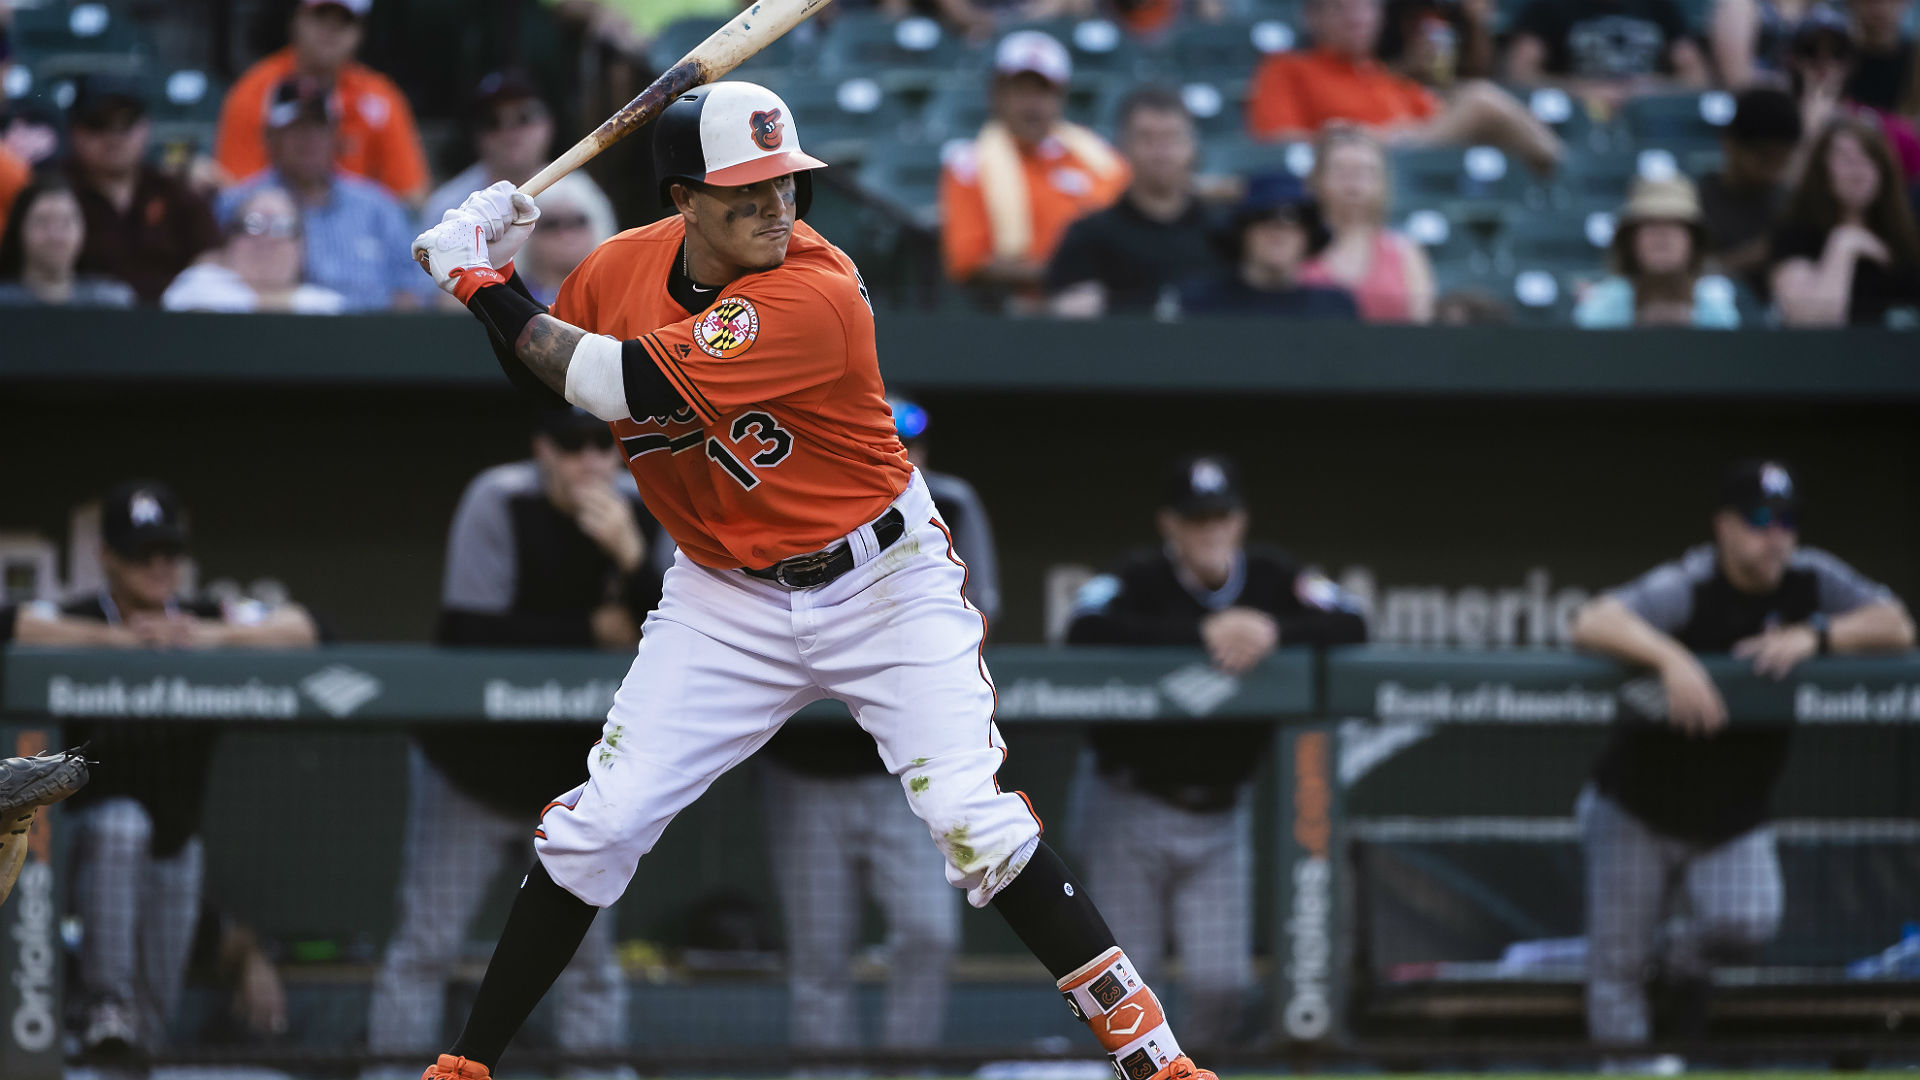 The Baseball Report: All-Star Rosters Announced, Machado Trade Talks Heat Up